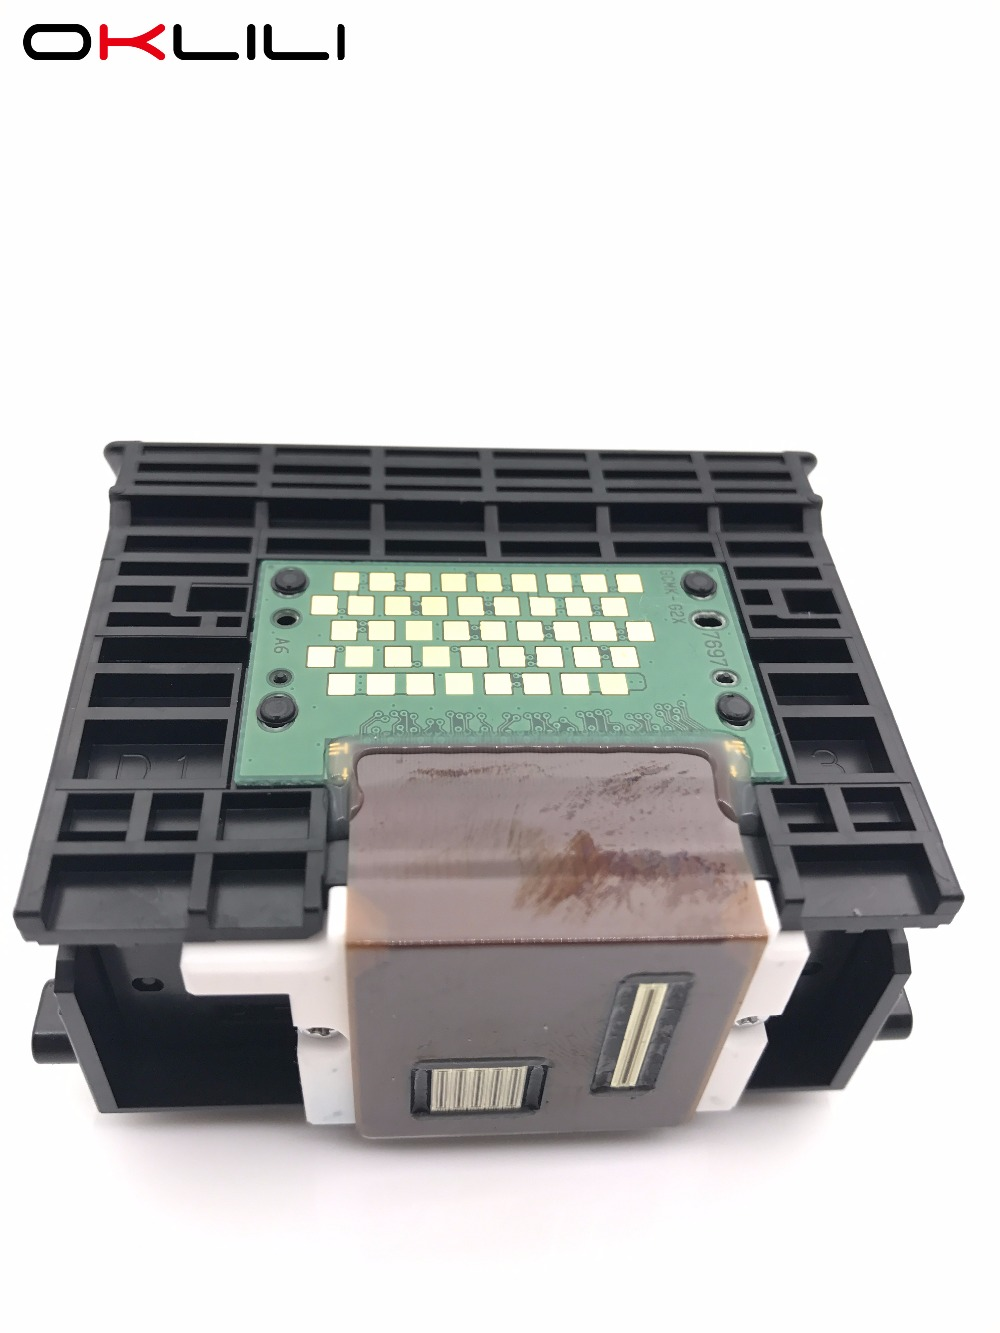 OKLILI ORIGINAL QY6-0070 QY6-0070-000 Printhead Print Head Printer Head for Canon MP510 MP520 MX700 iP3300 iP3500 плетка из натуральной кожи